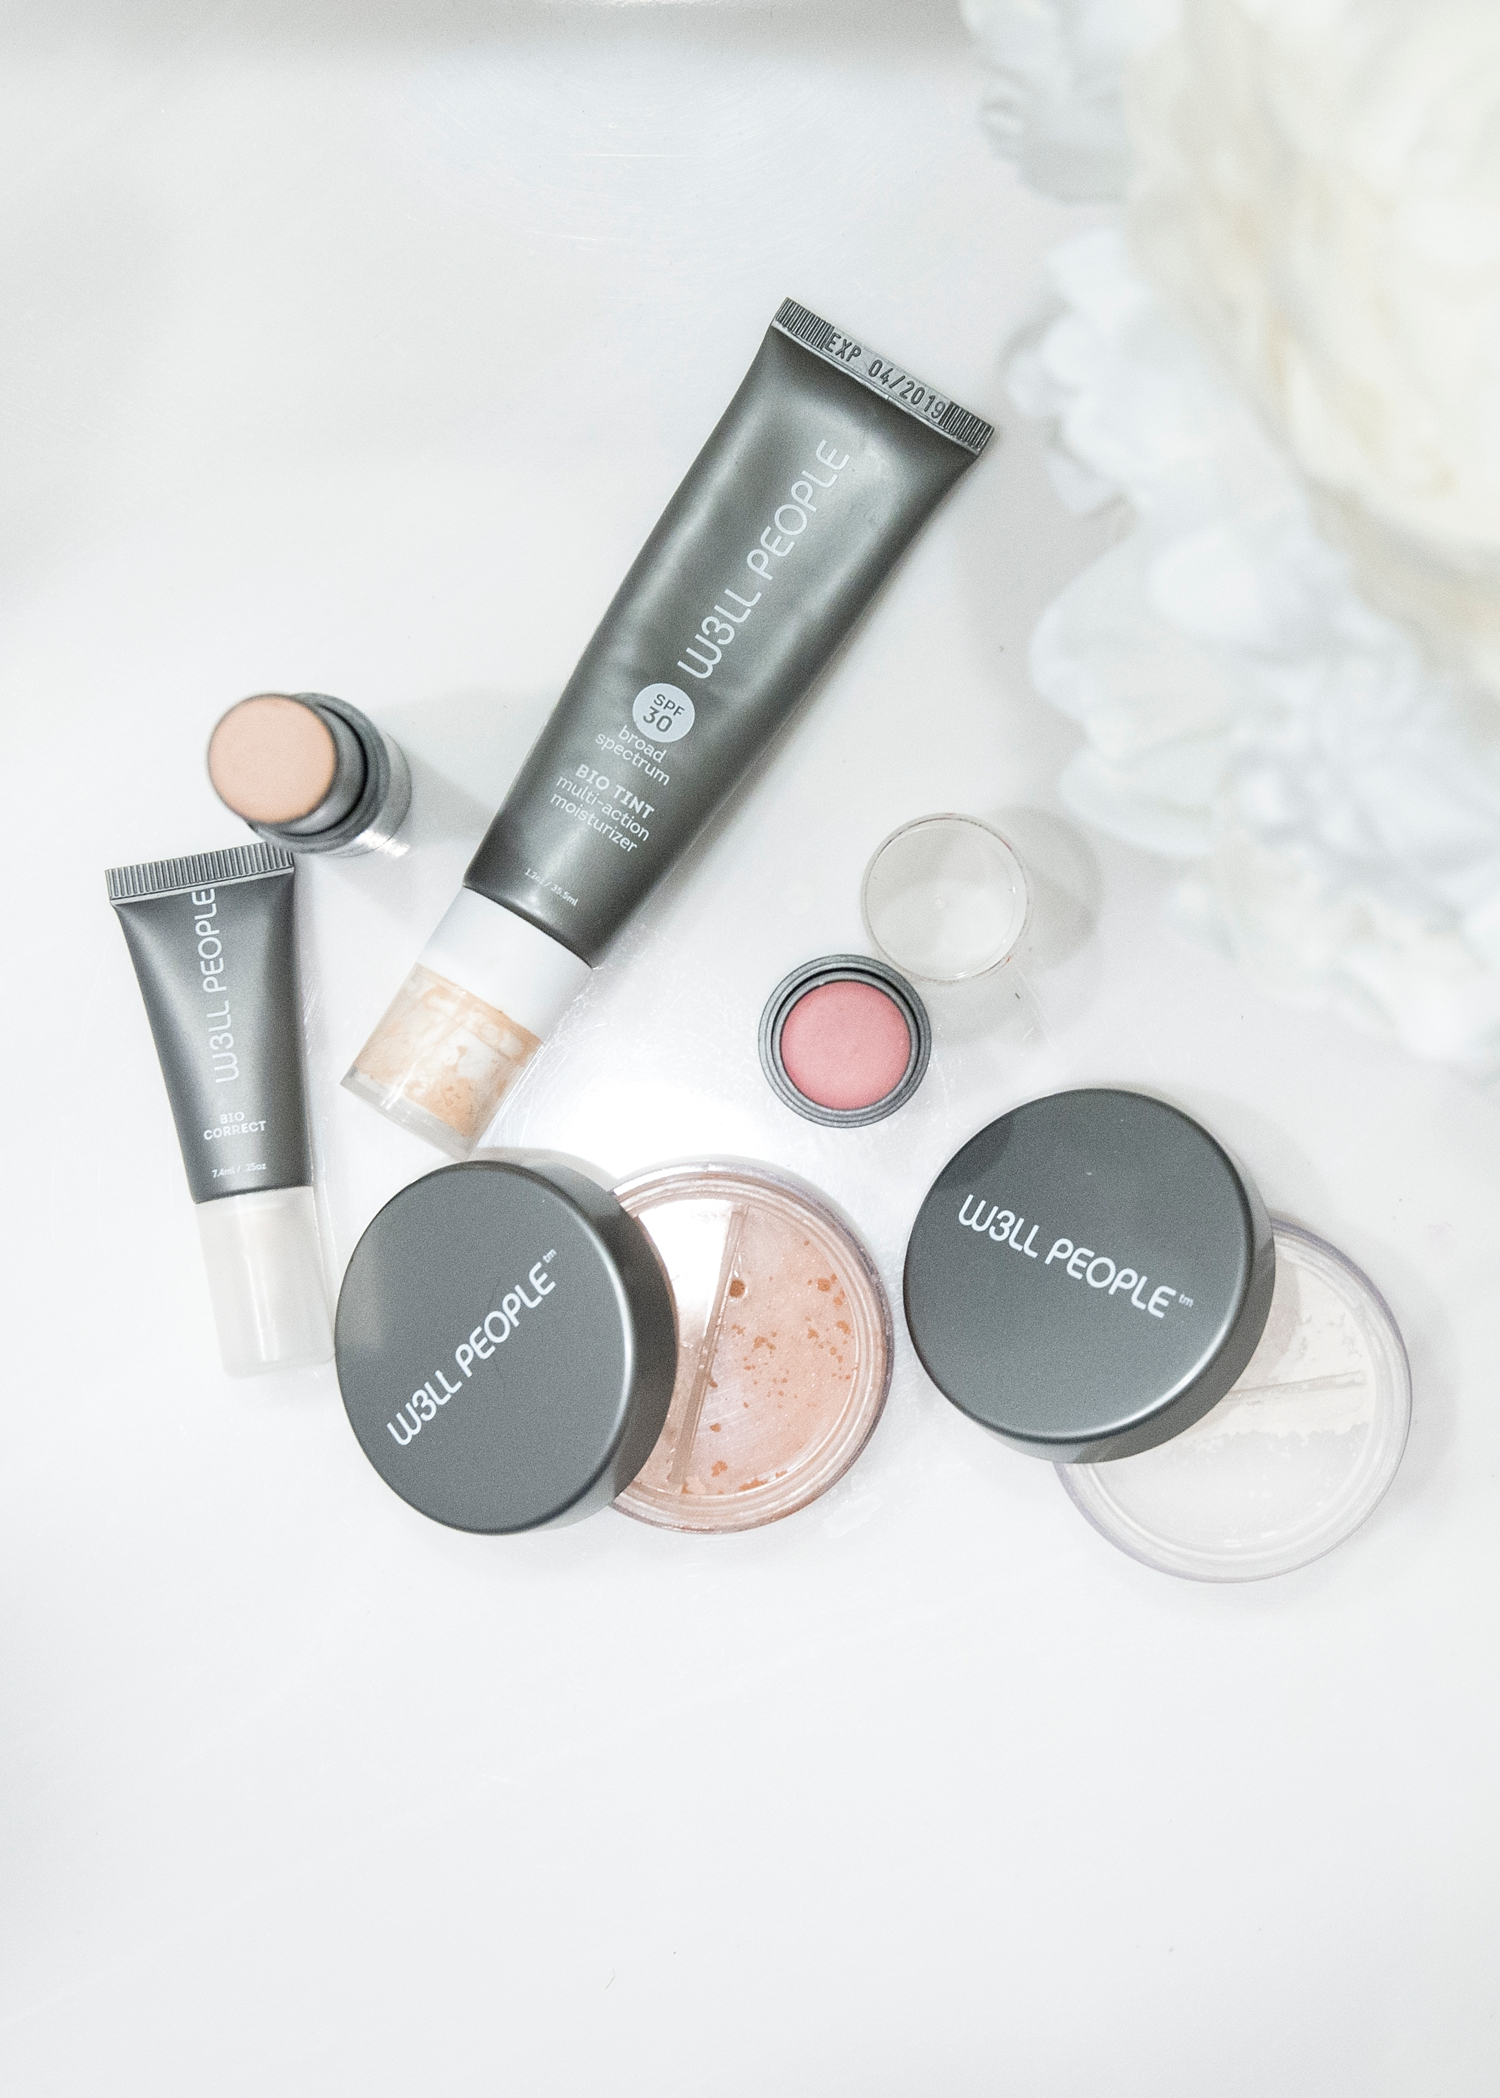 Looking for clean beauty options and you're an over 40 woman? I've got you covered in today's post all about green beauty that also cares for aging skin! W3LL People has great moisturizing options for women over 40--moisturizing and healthy ingredients help give your skin a boost!